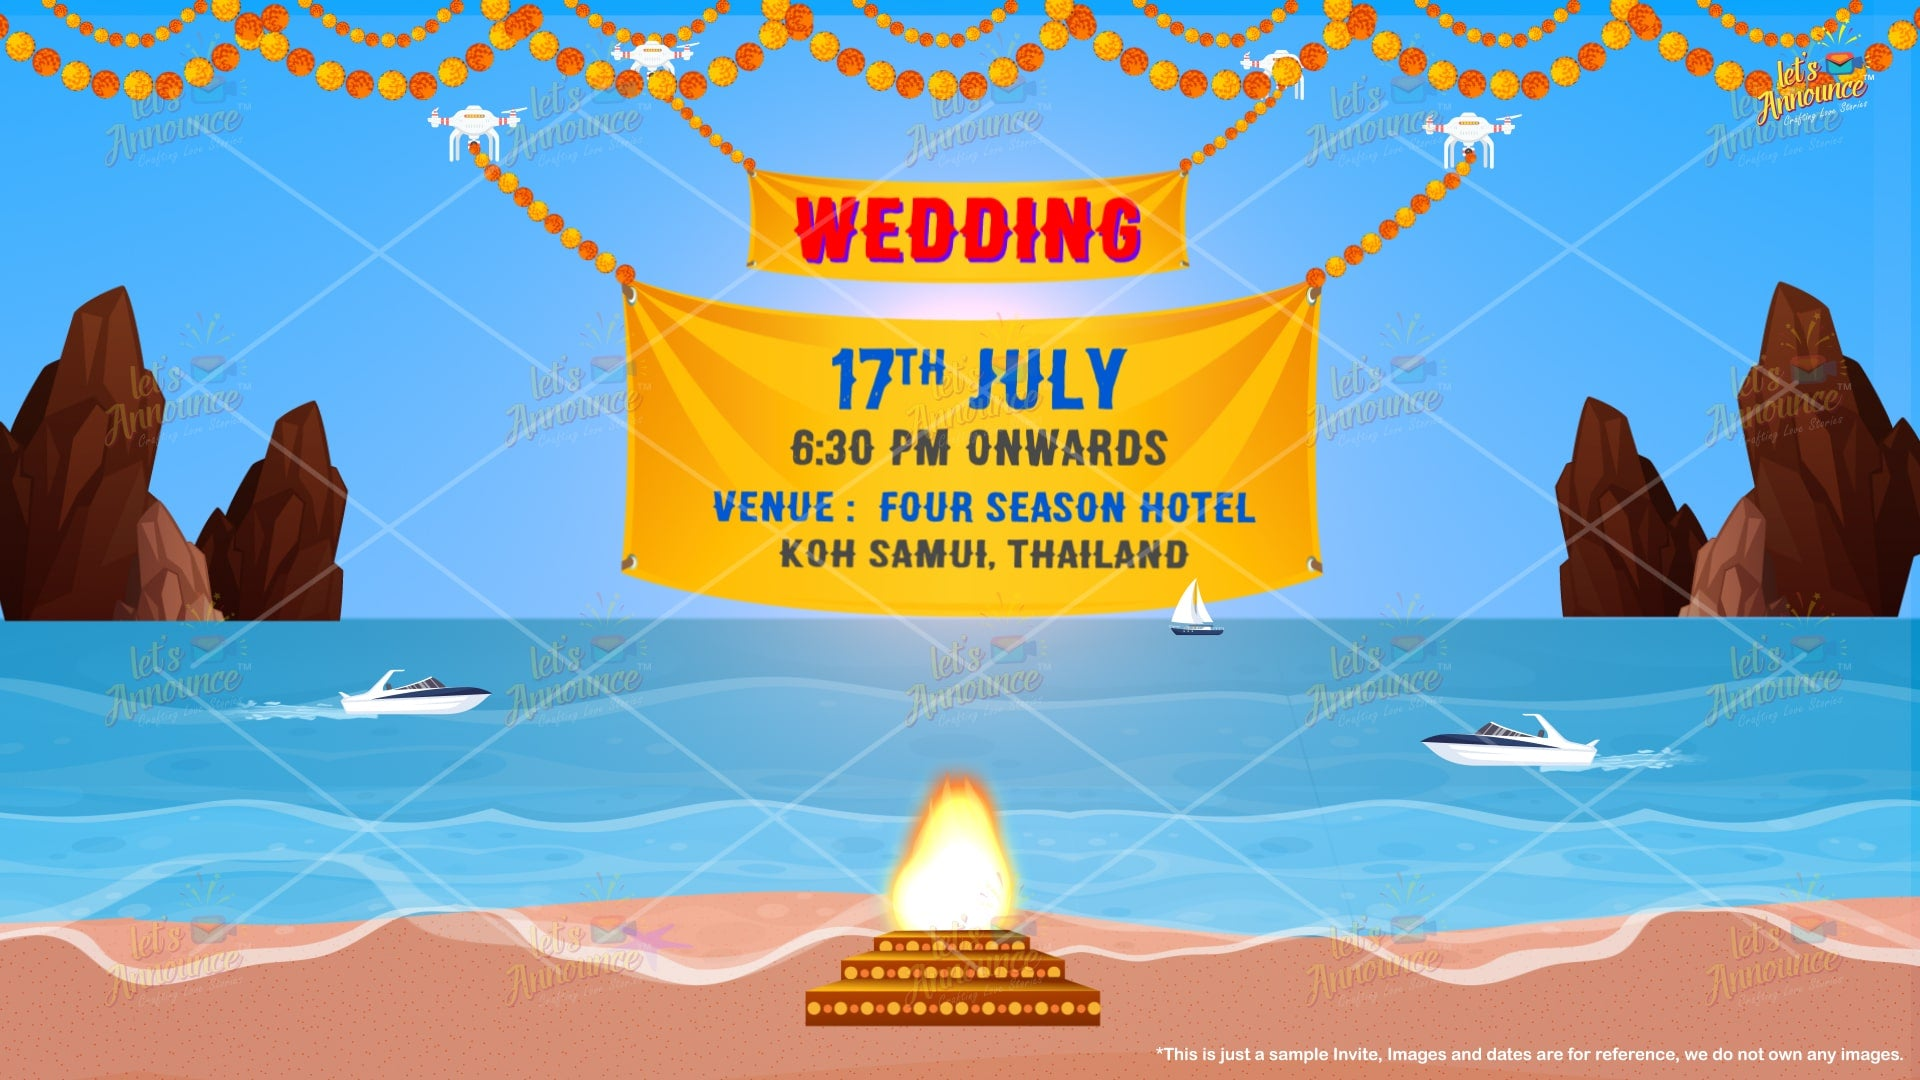 Amazing Beach Wedding Invite-61 sec (USD 100$)